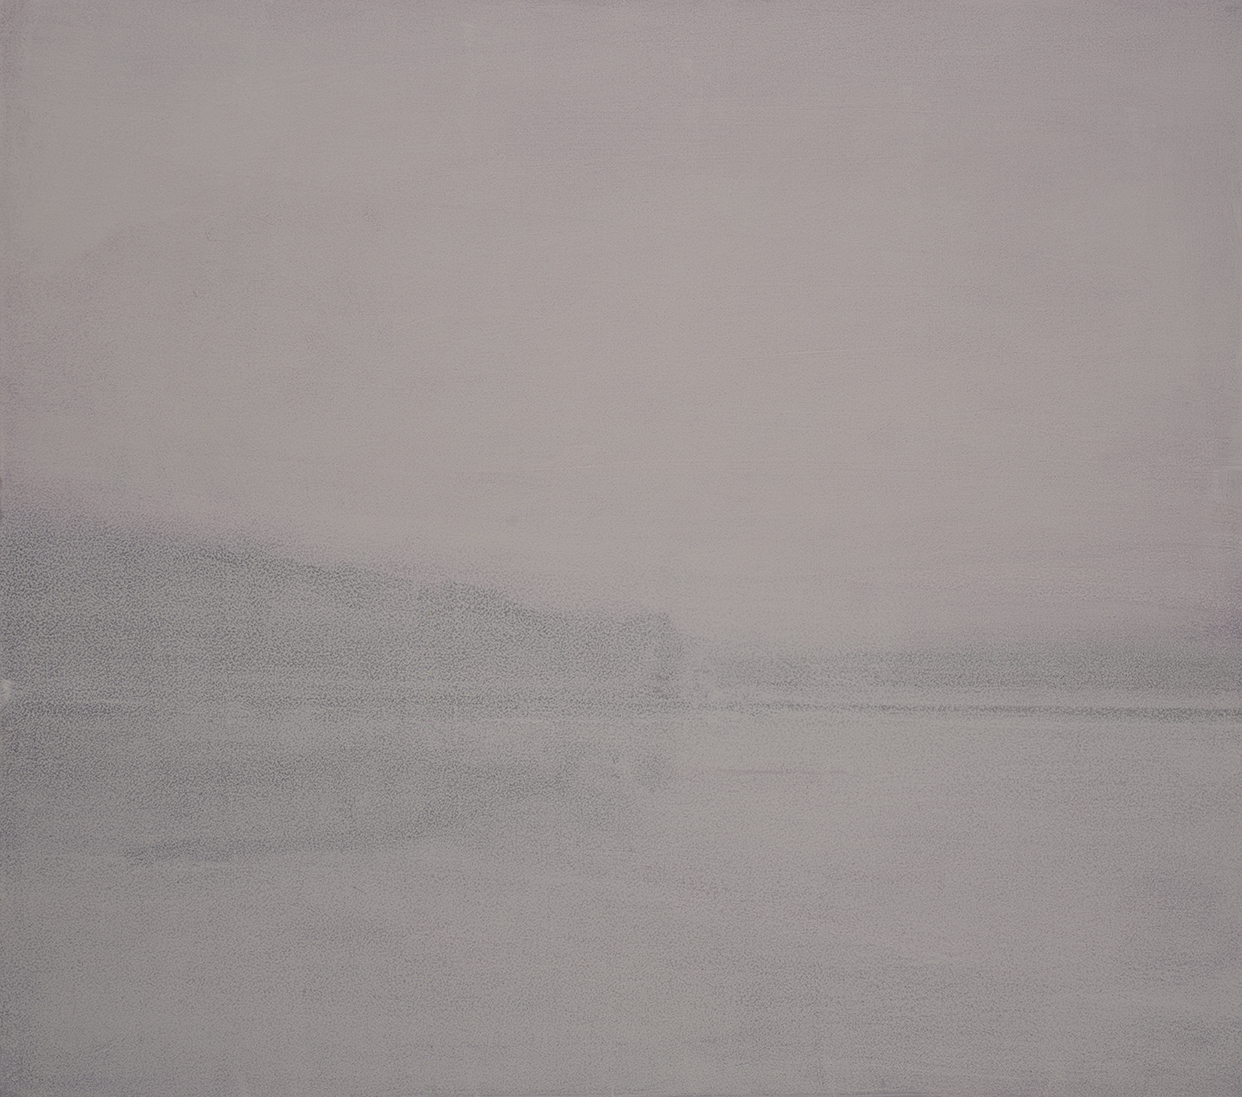 Landscape in Gray and White